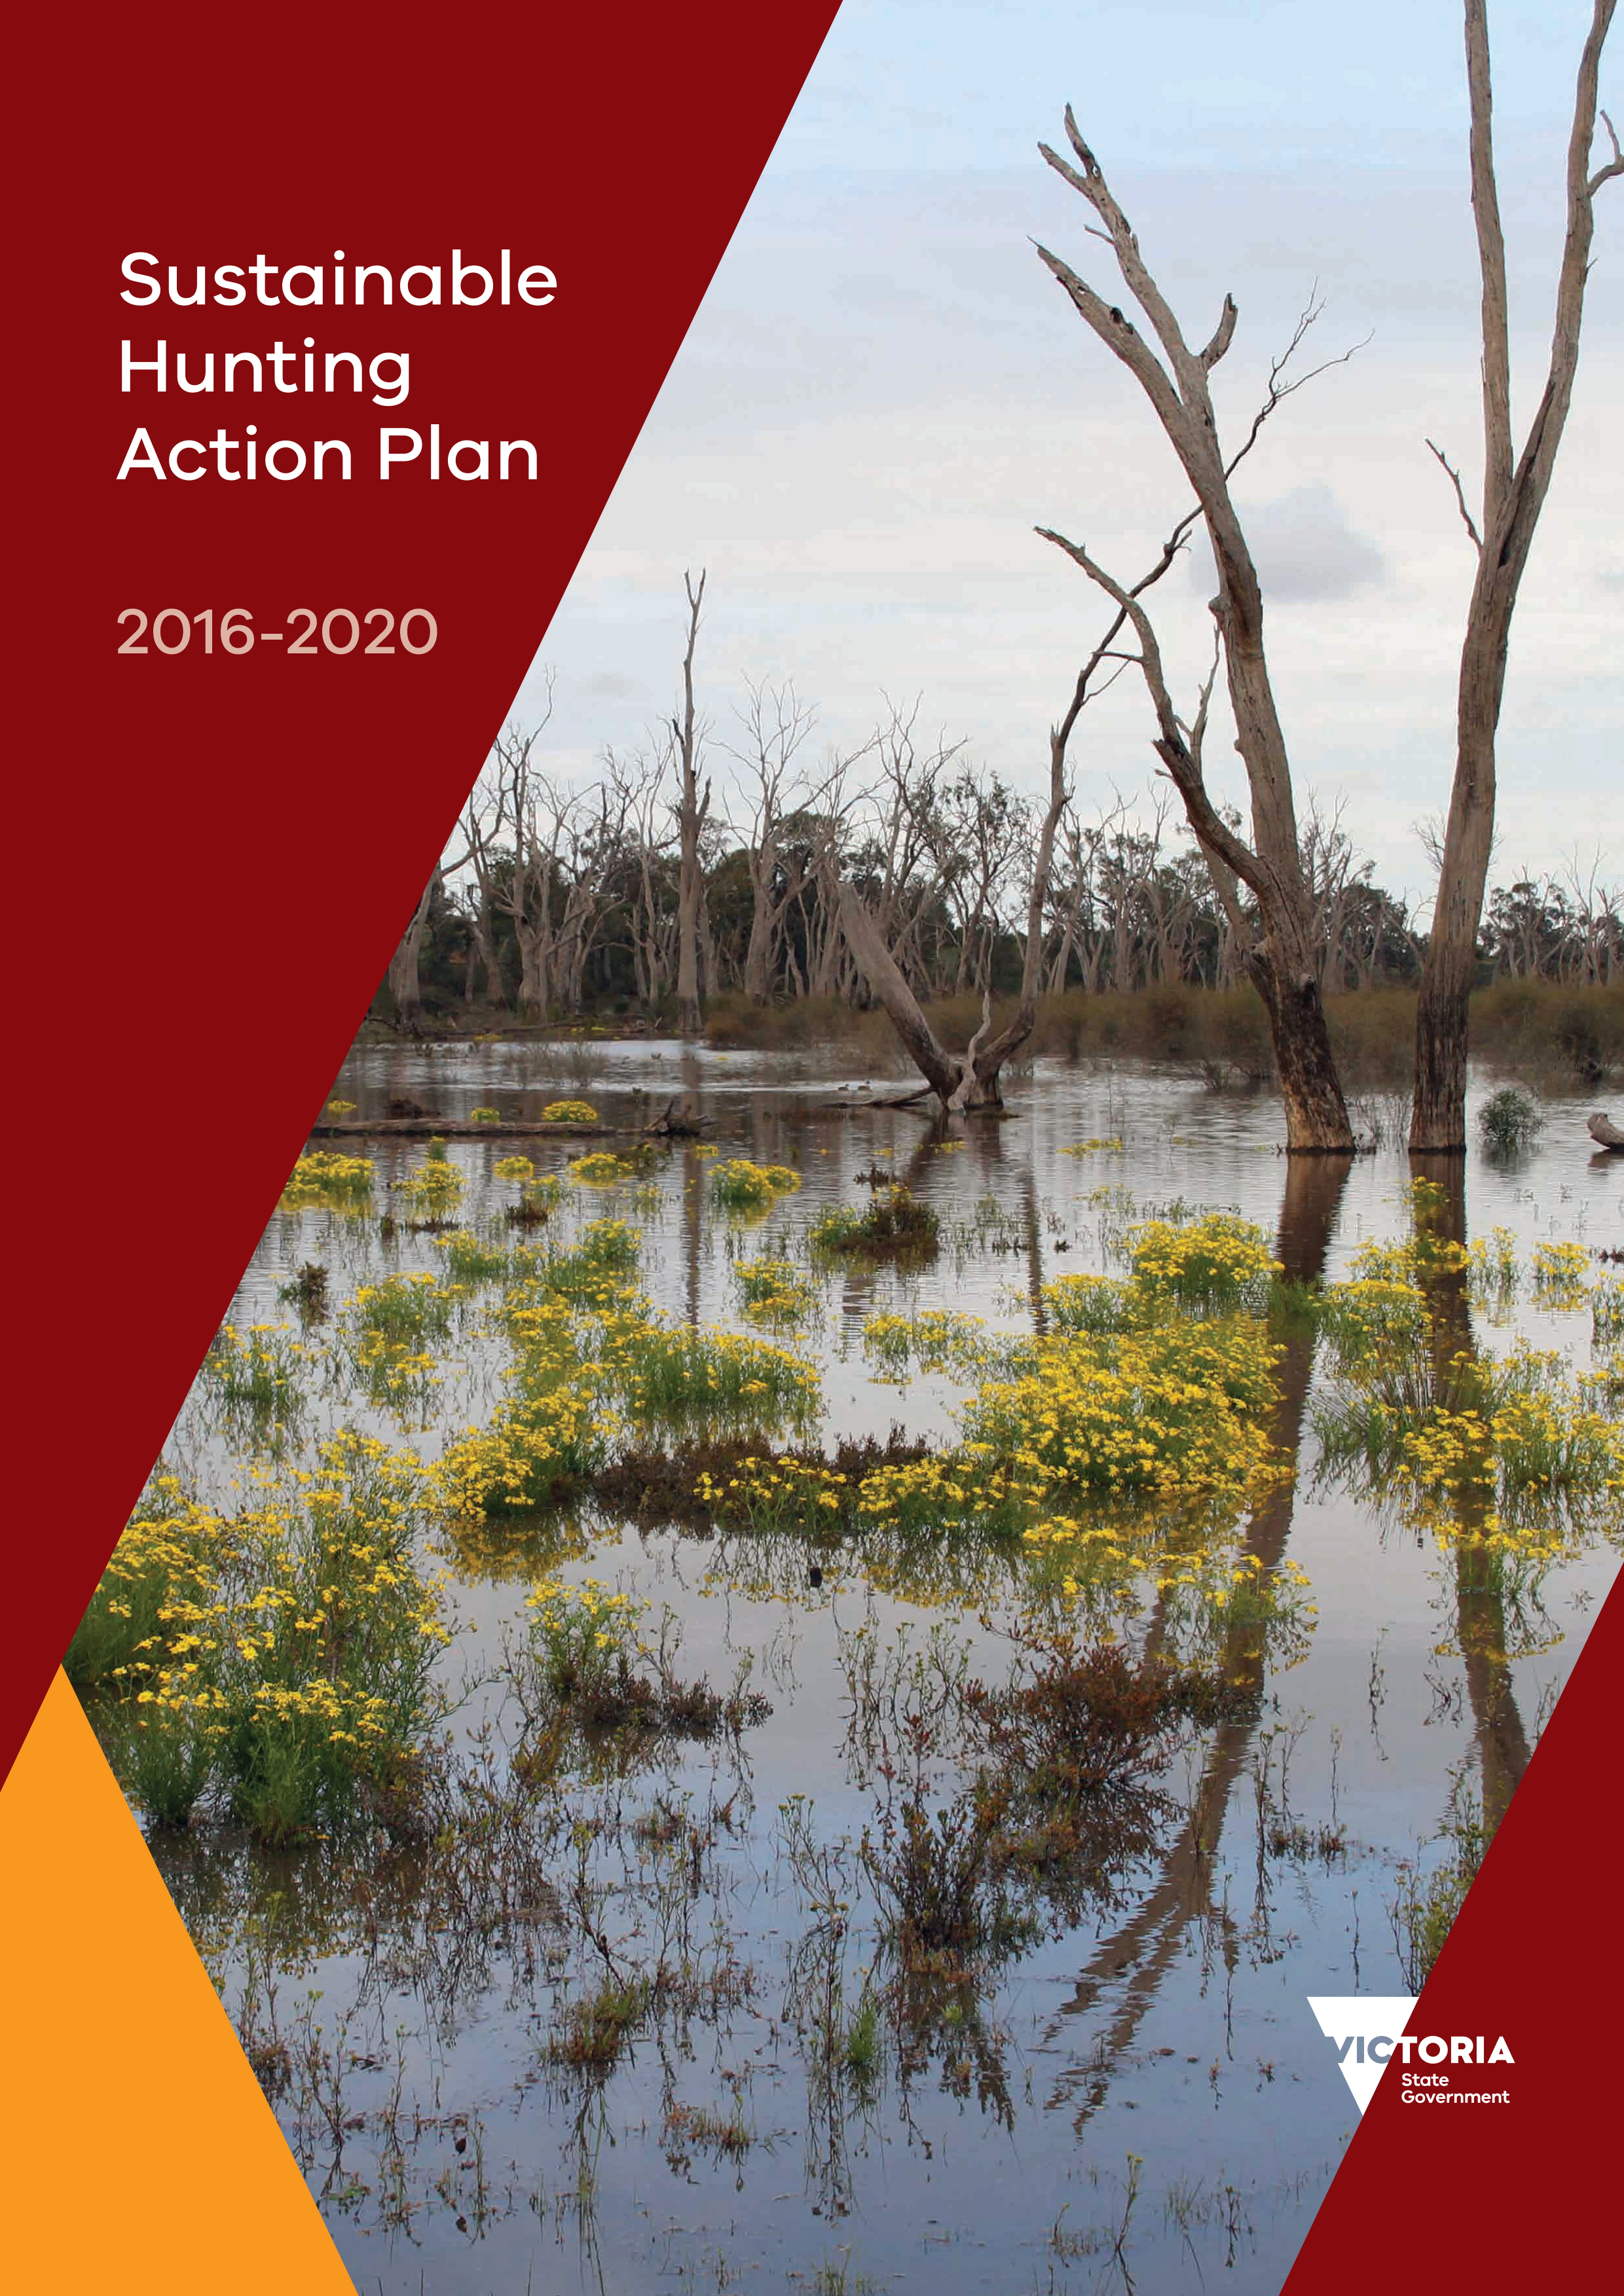 $5.3m Hunting Acton Plan released